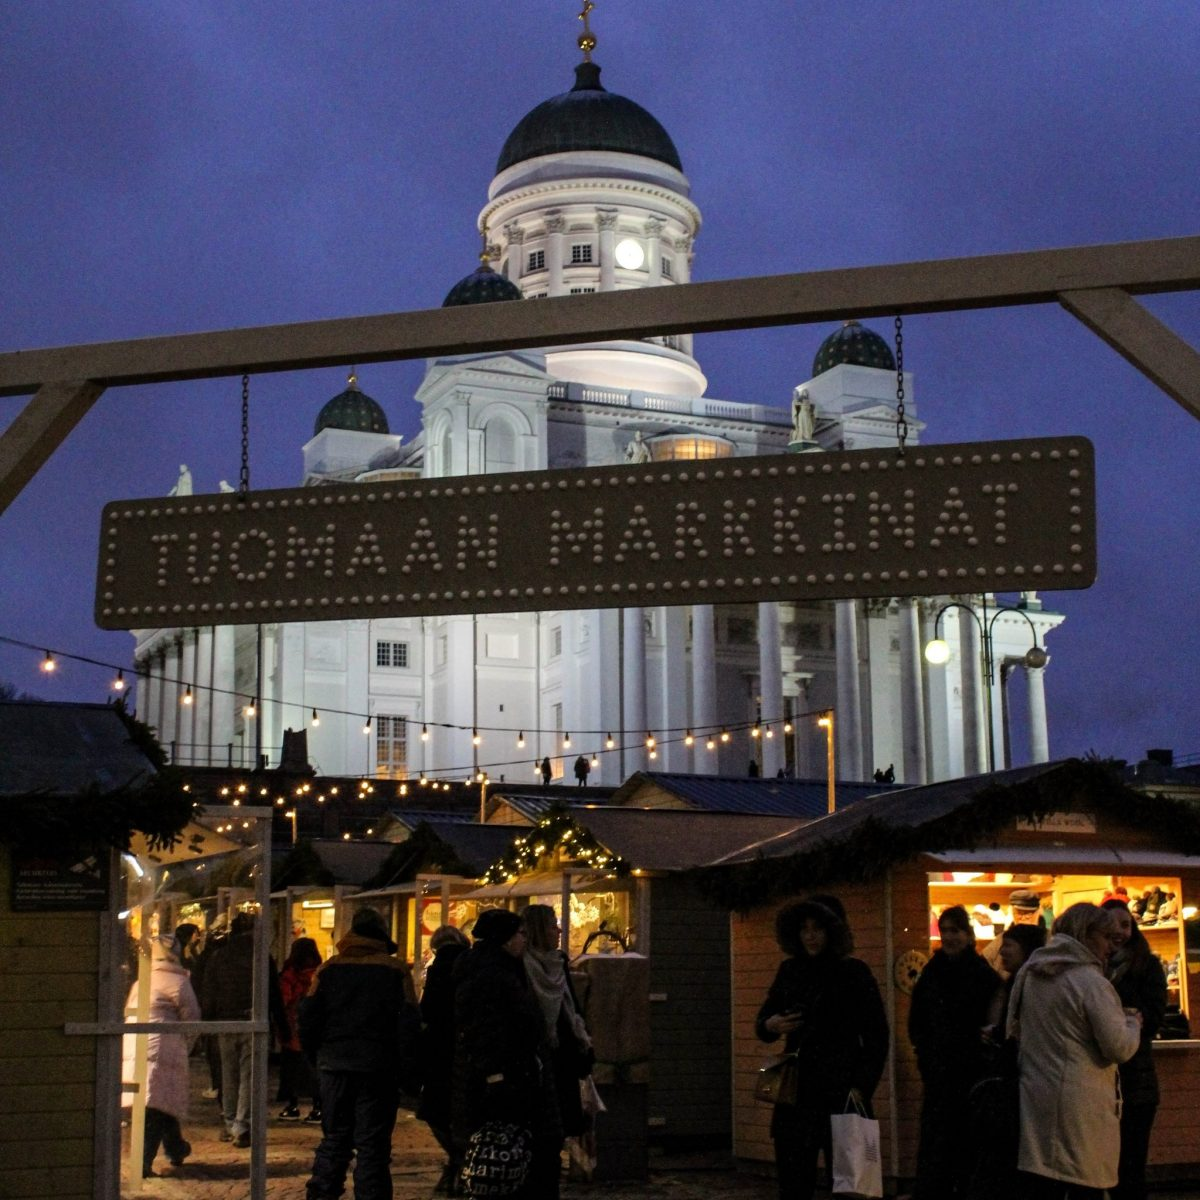 Helsinki Christmas Market entrance